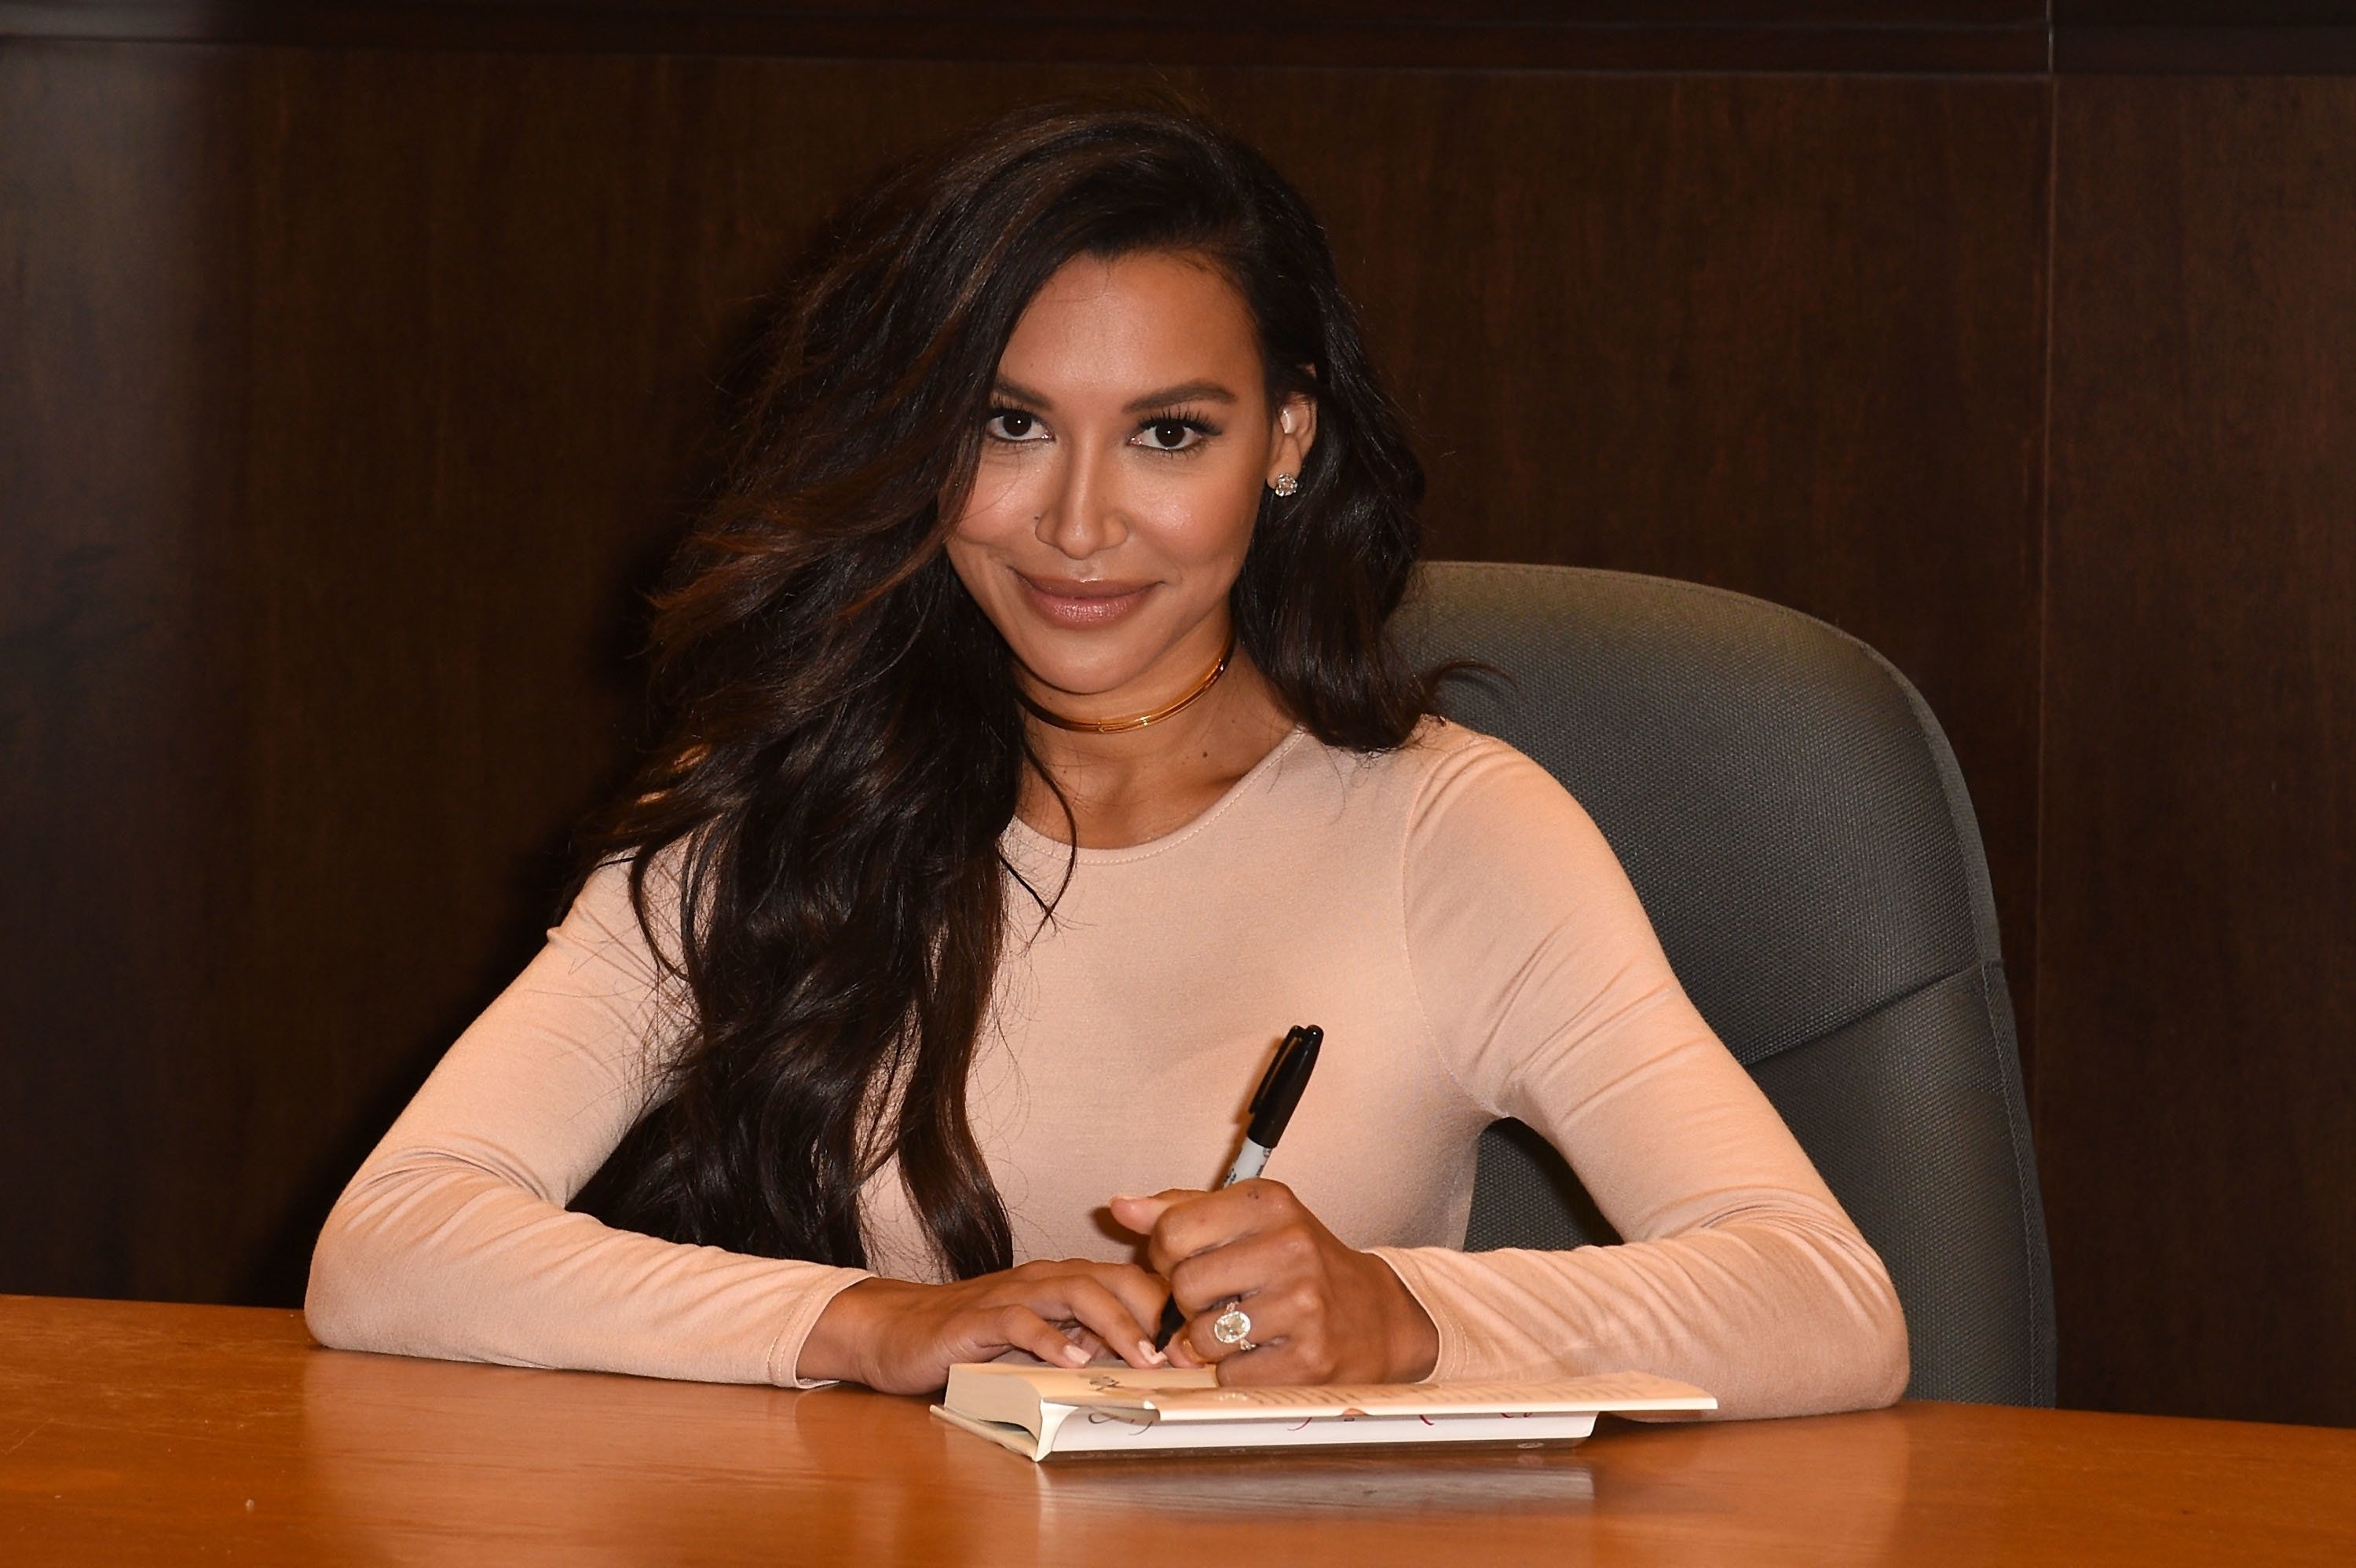 LOS ANGELES, CA - SEPTEMBER 13:  Naya Rivera attends her book signing for 'Sorry Not Sorry' at Barnes & Noble at The Grove on September 13, 2016 in Los Angeles, California.  (Photo by Joshua Blanchard/Getty Images)